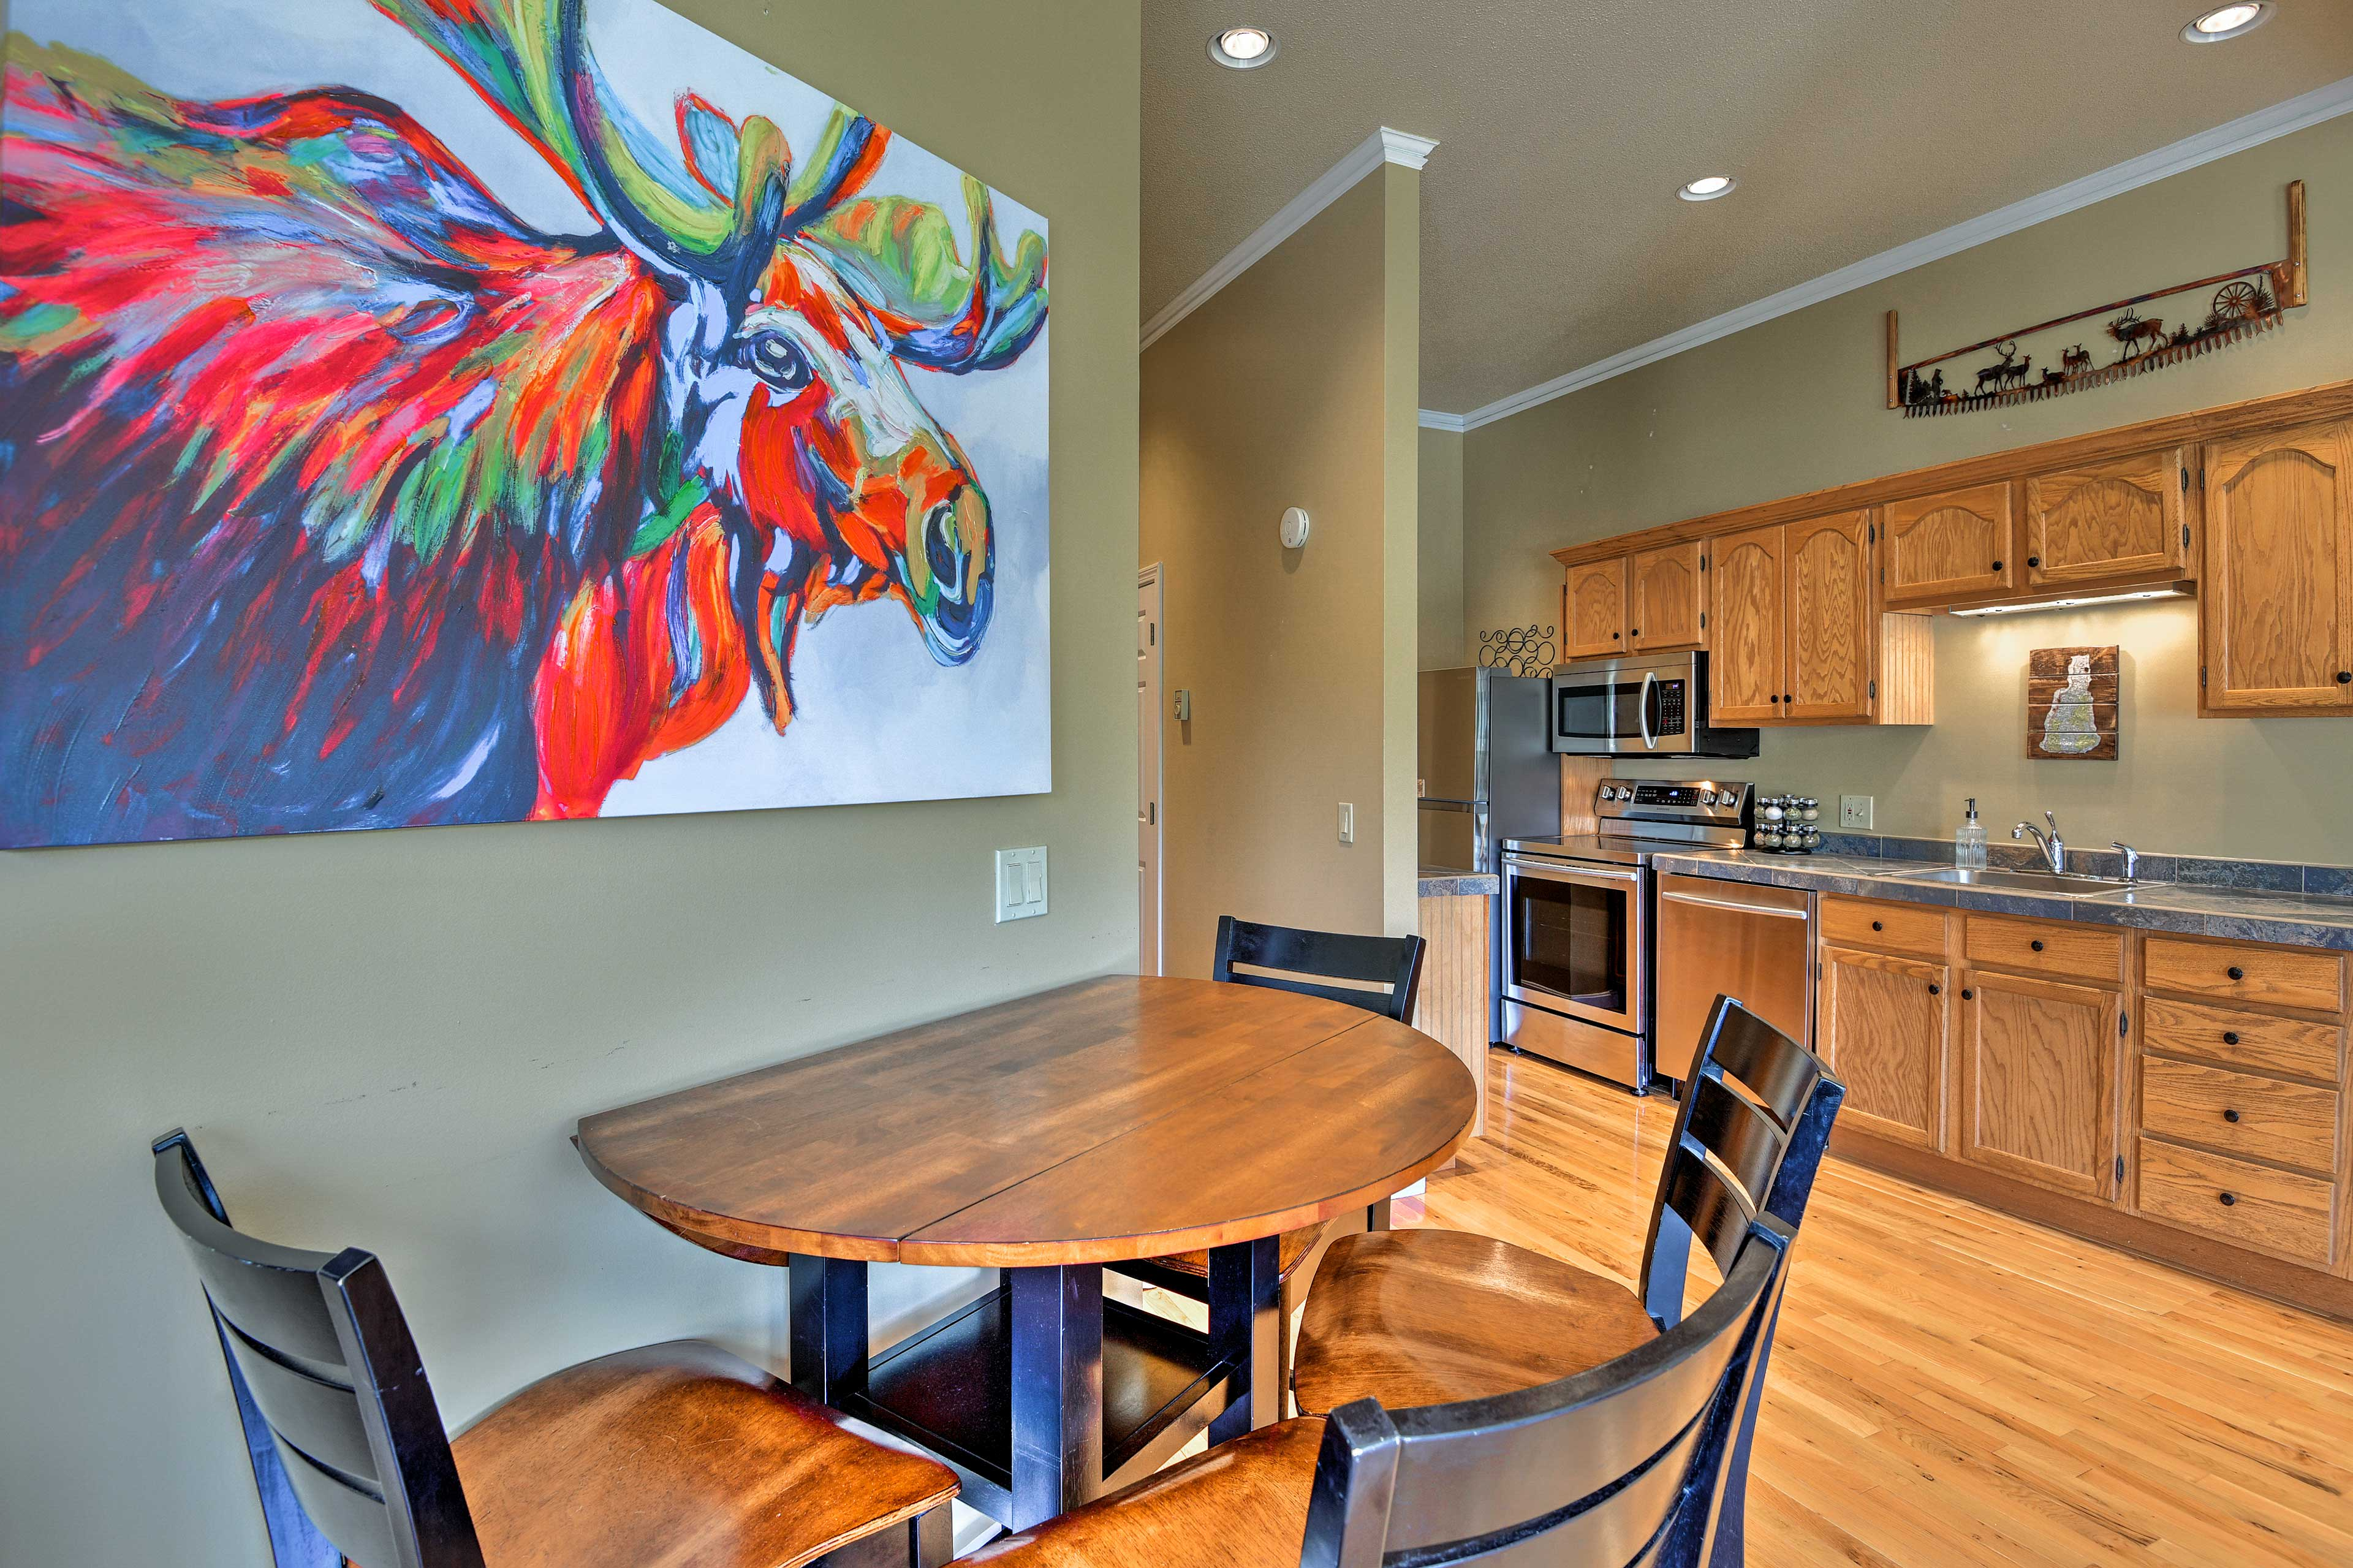 The condo offers 2 bedrooms and 2 baths.